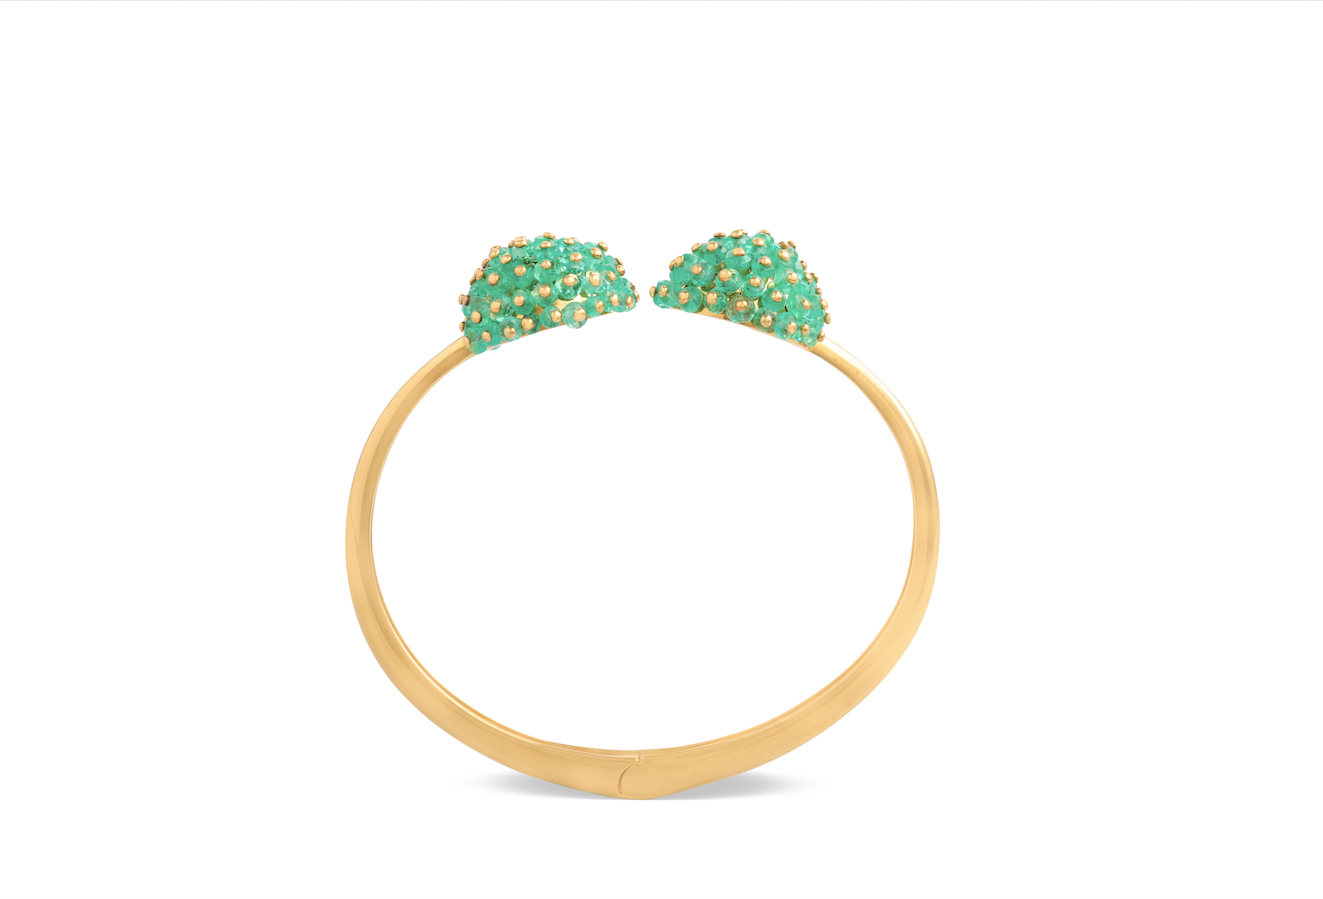 Emerald bangle crafted with 18k yellow gold